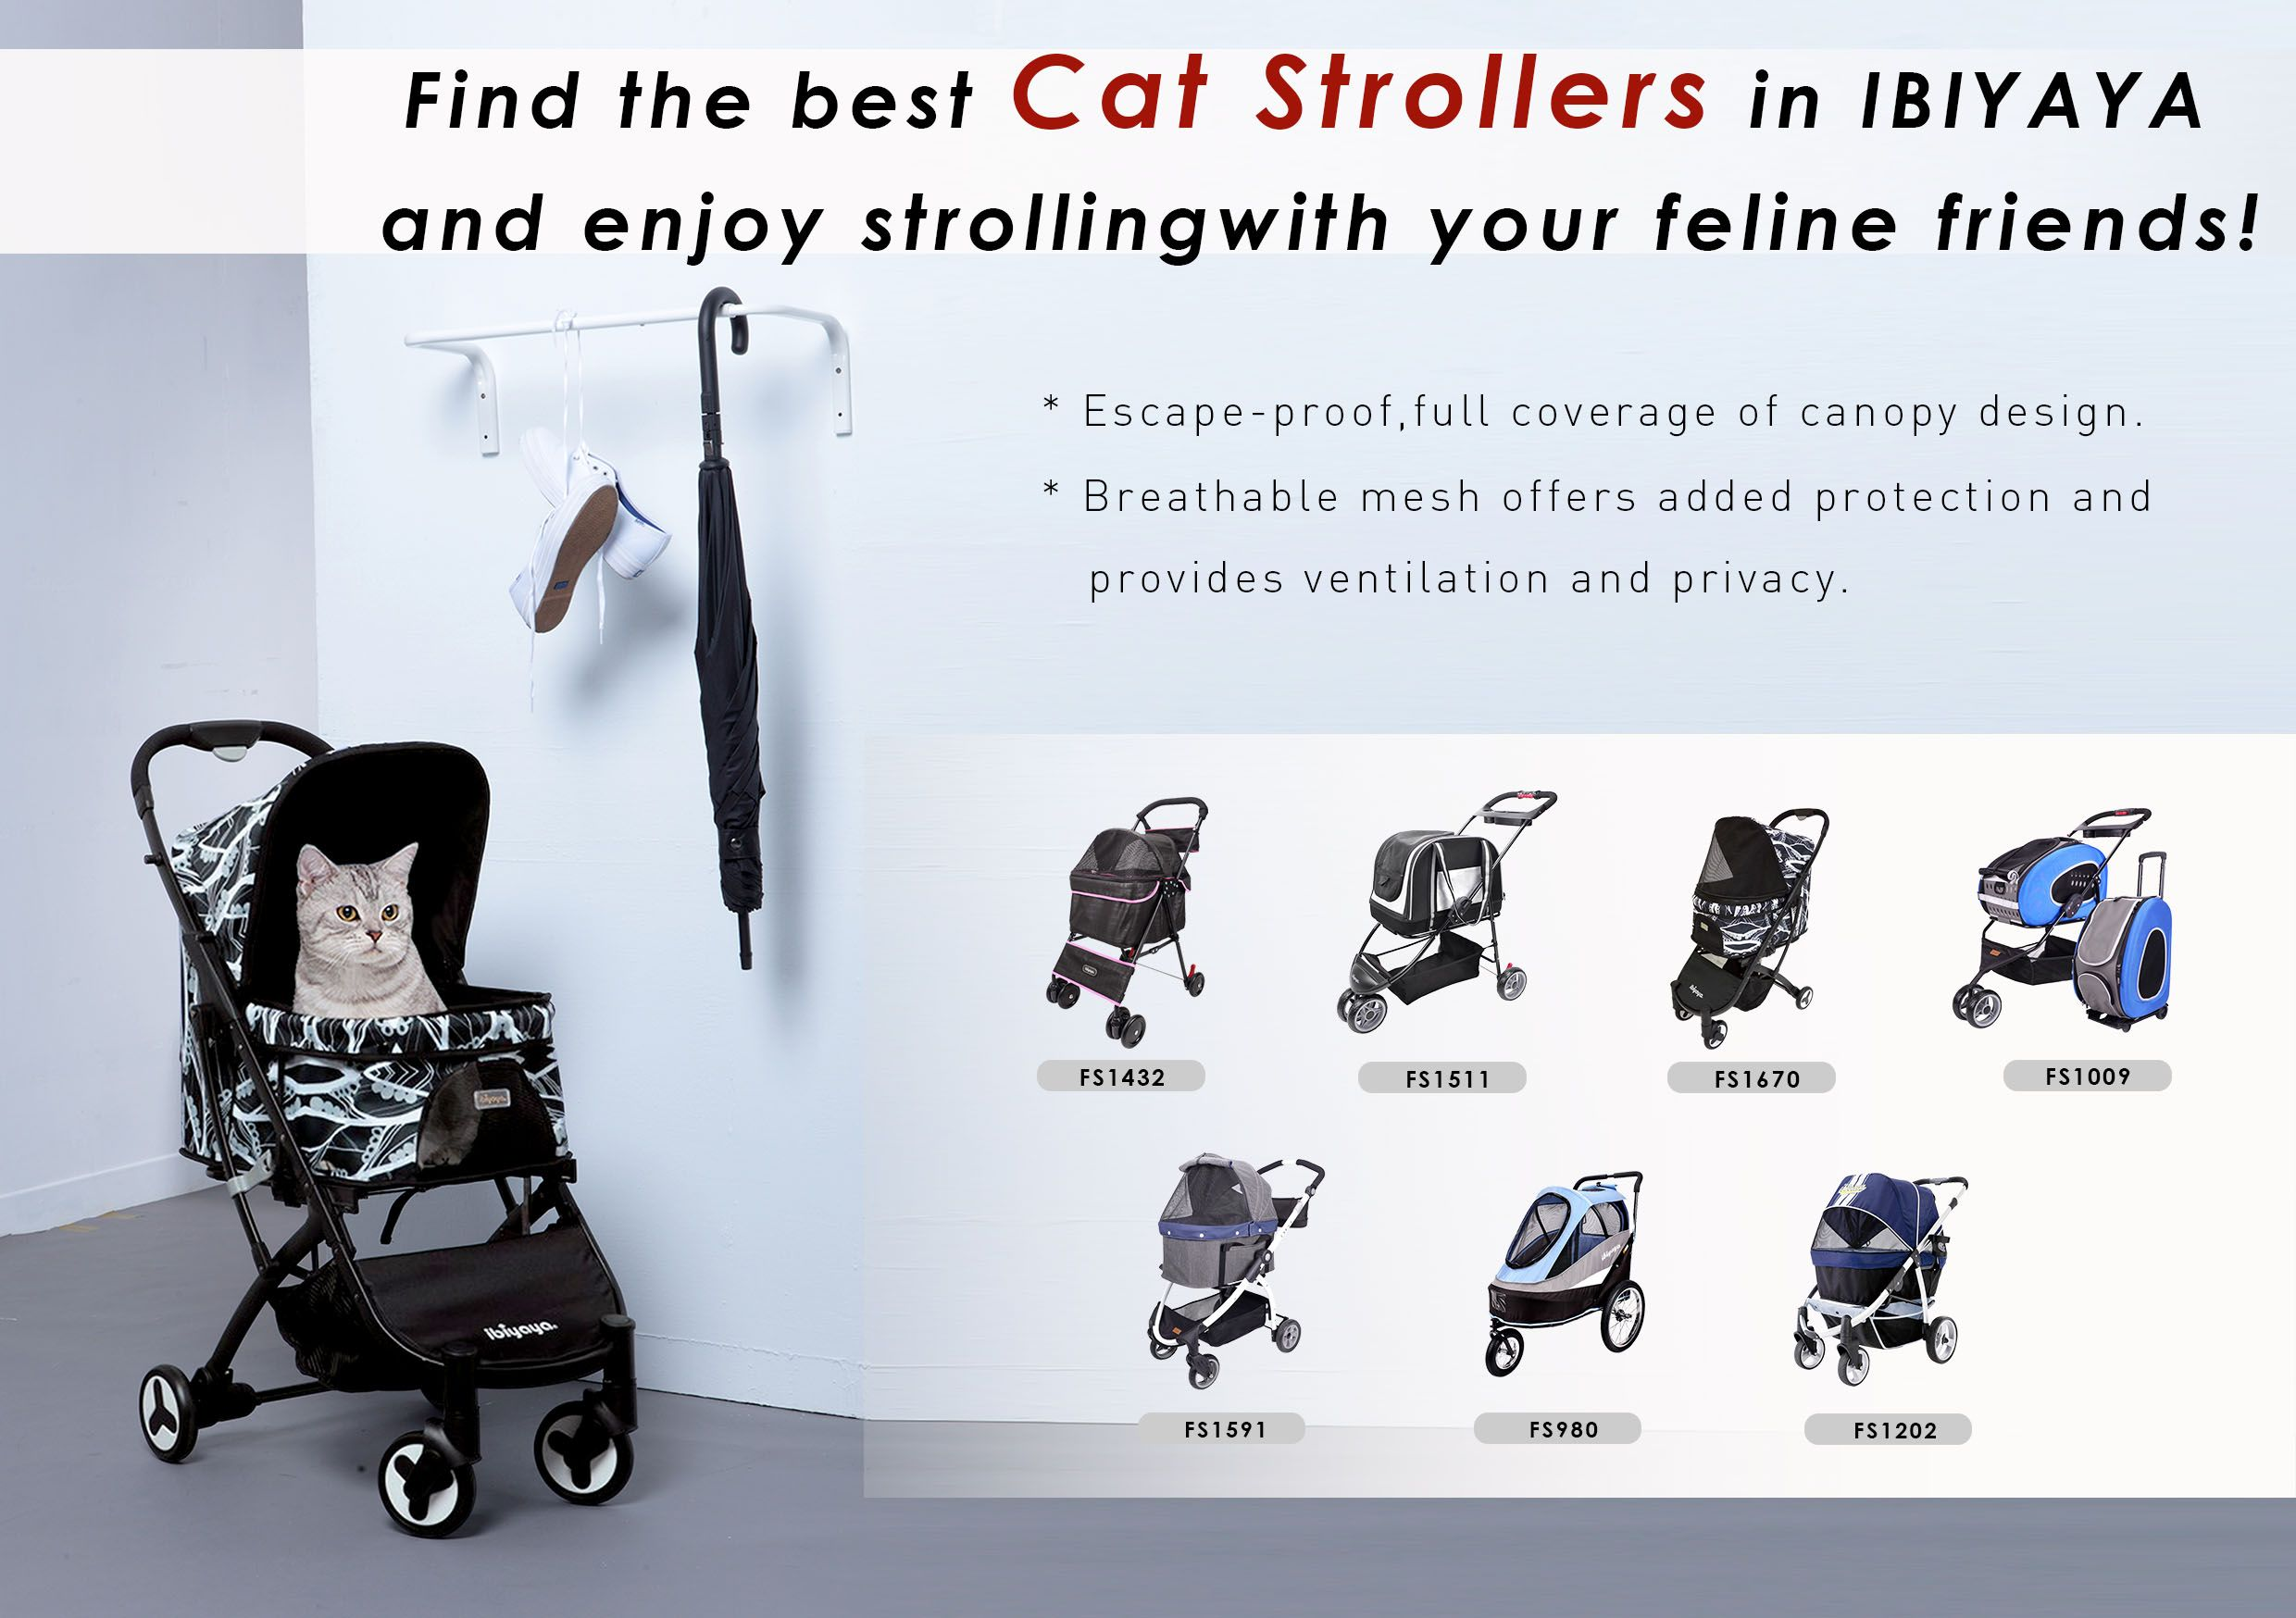 Find the best Cat Strollers in IBIYAYA and enjoy strolling with your feline friends! 🚘🚲🚗☀️ #petstroller #ibiyaya #catstroller #petbuggy #furbaby #feline #kittens #strolling